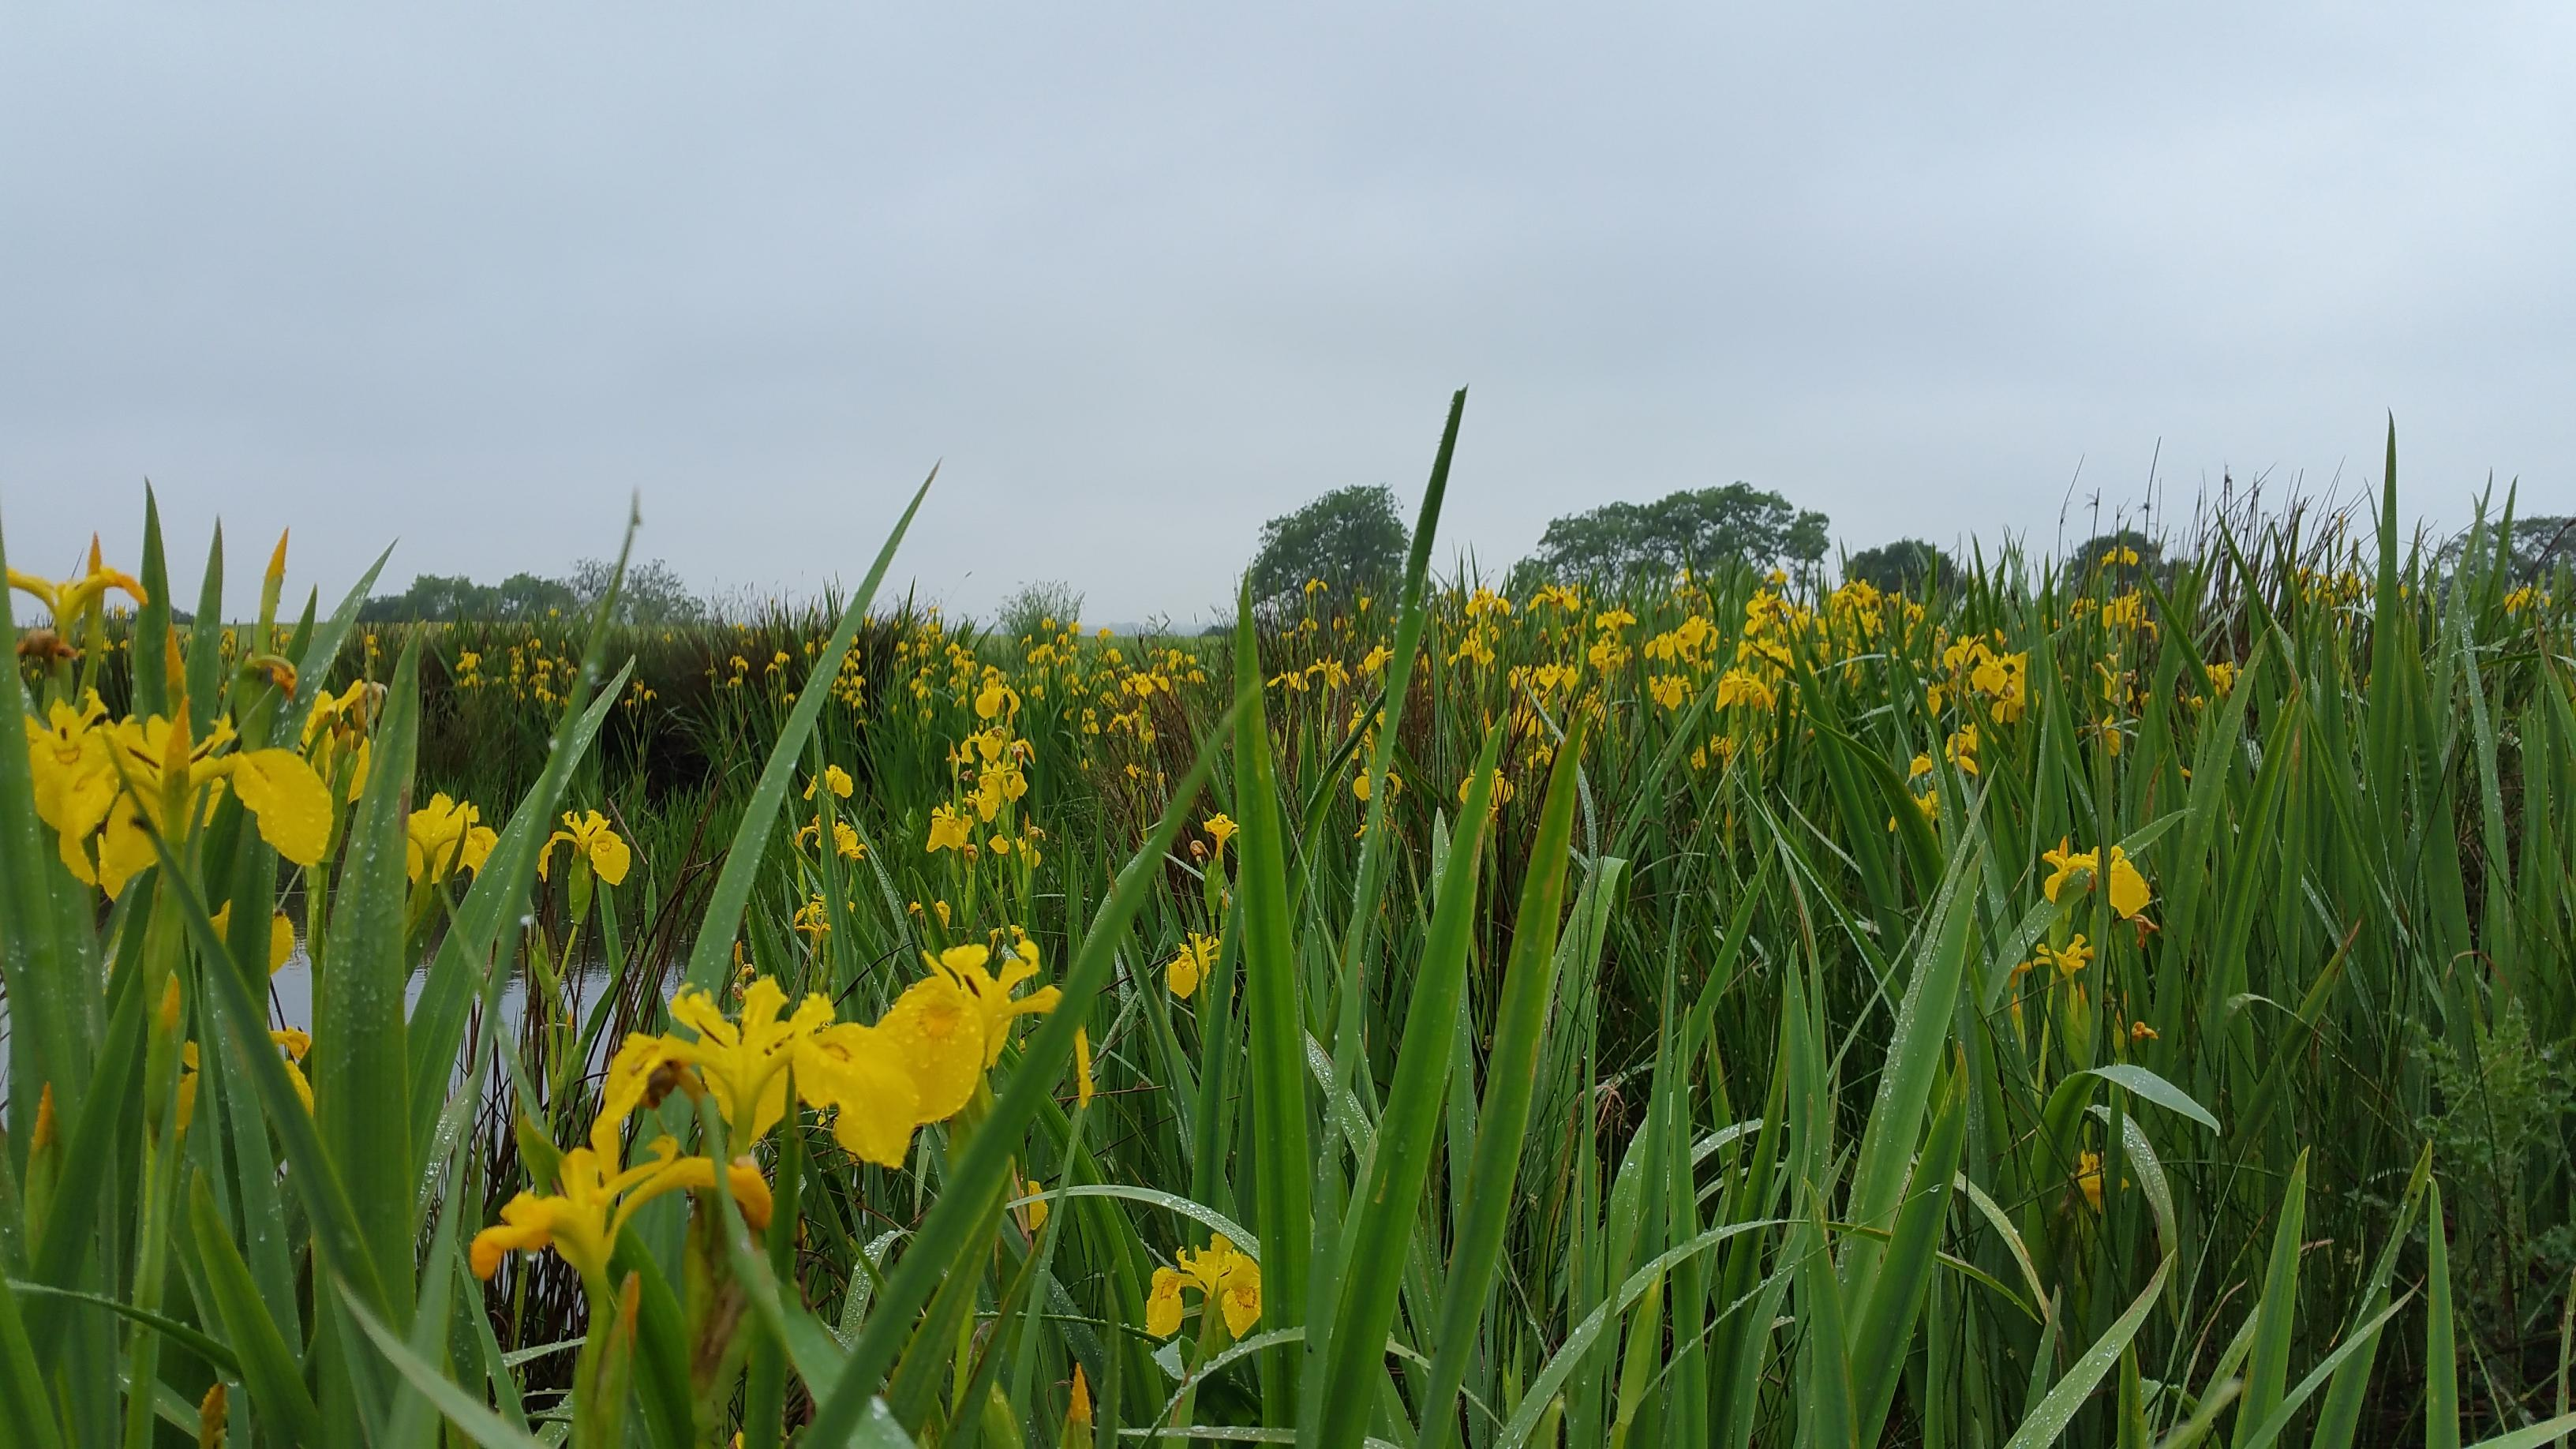 May at Fenns meadow with a stunning show of yellow irises.